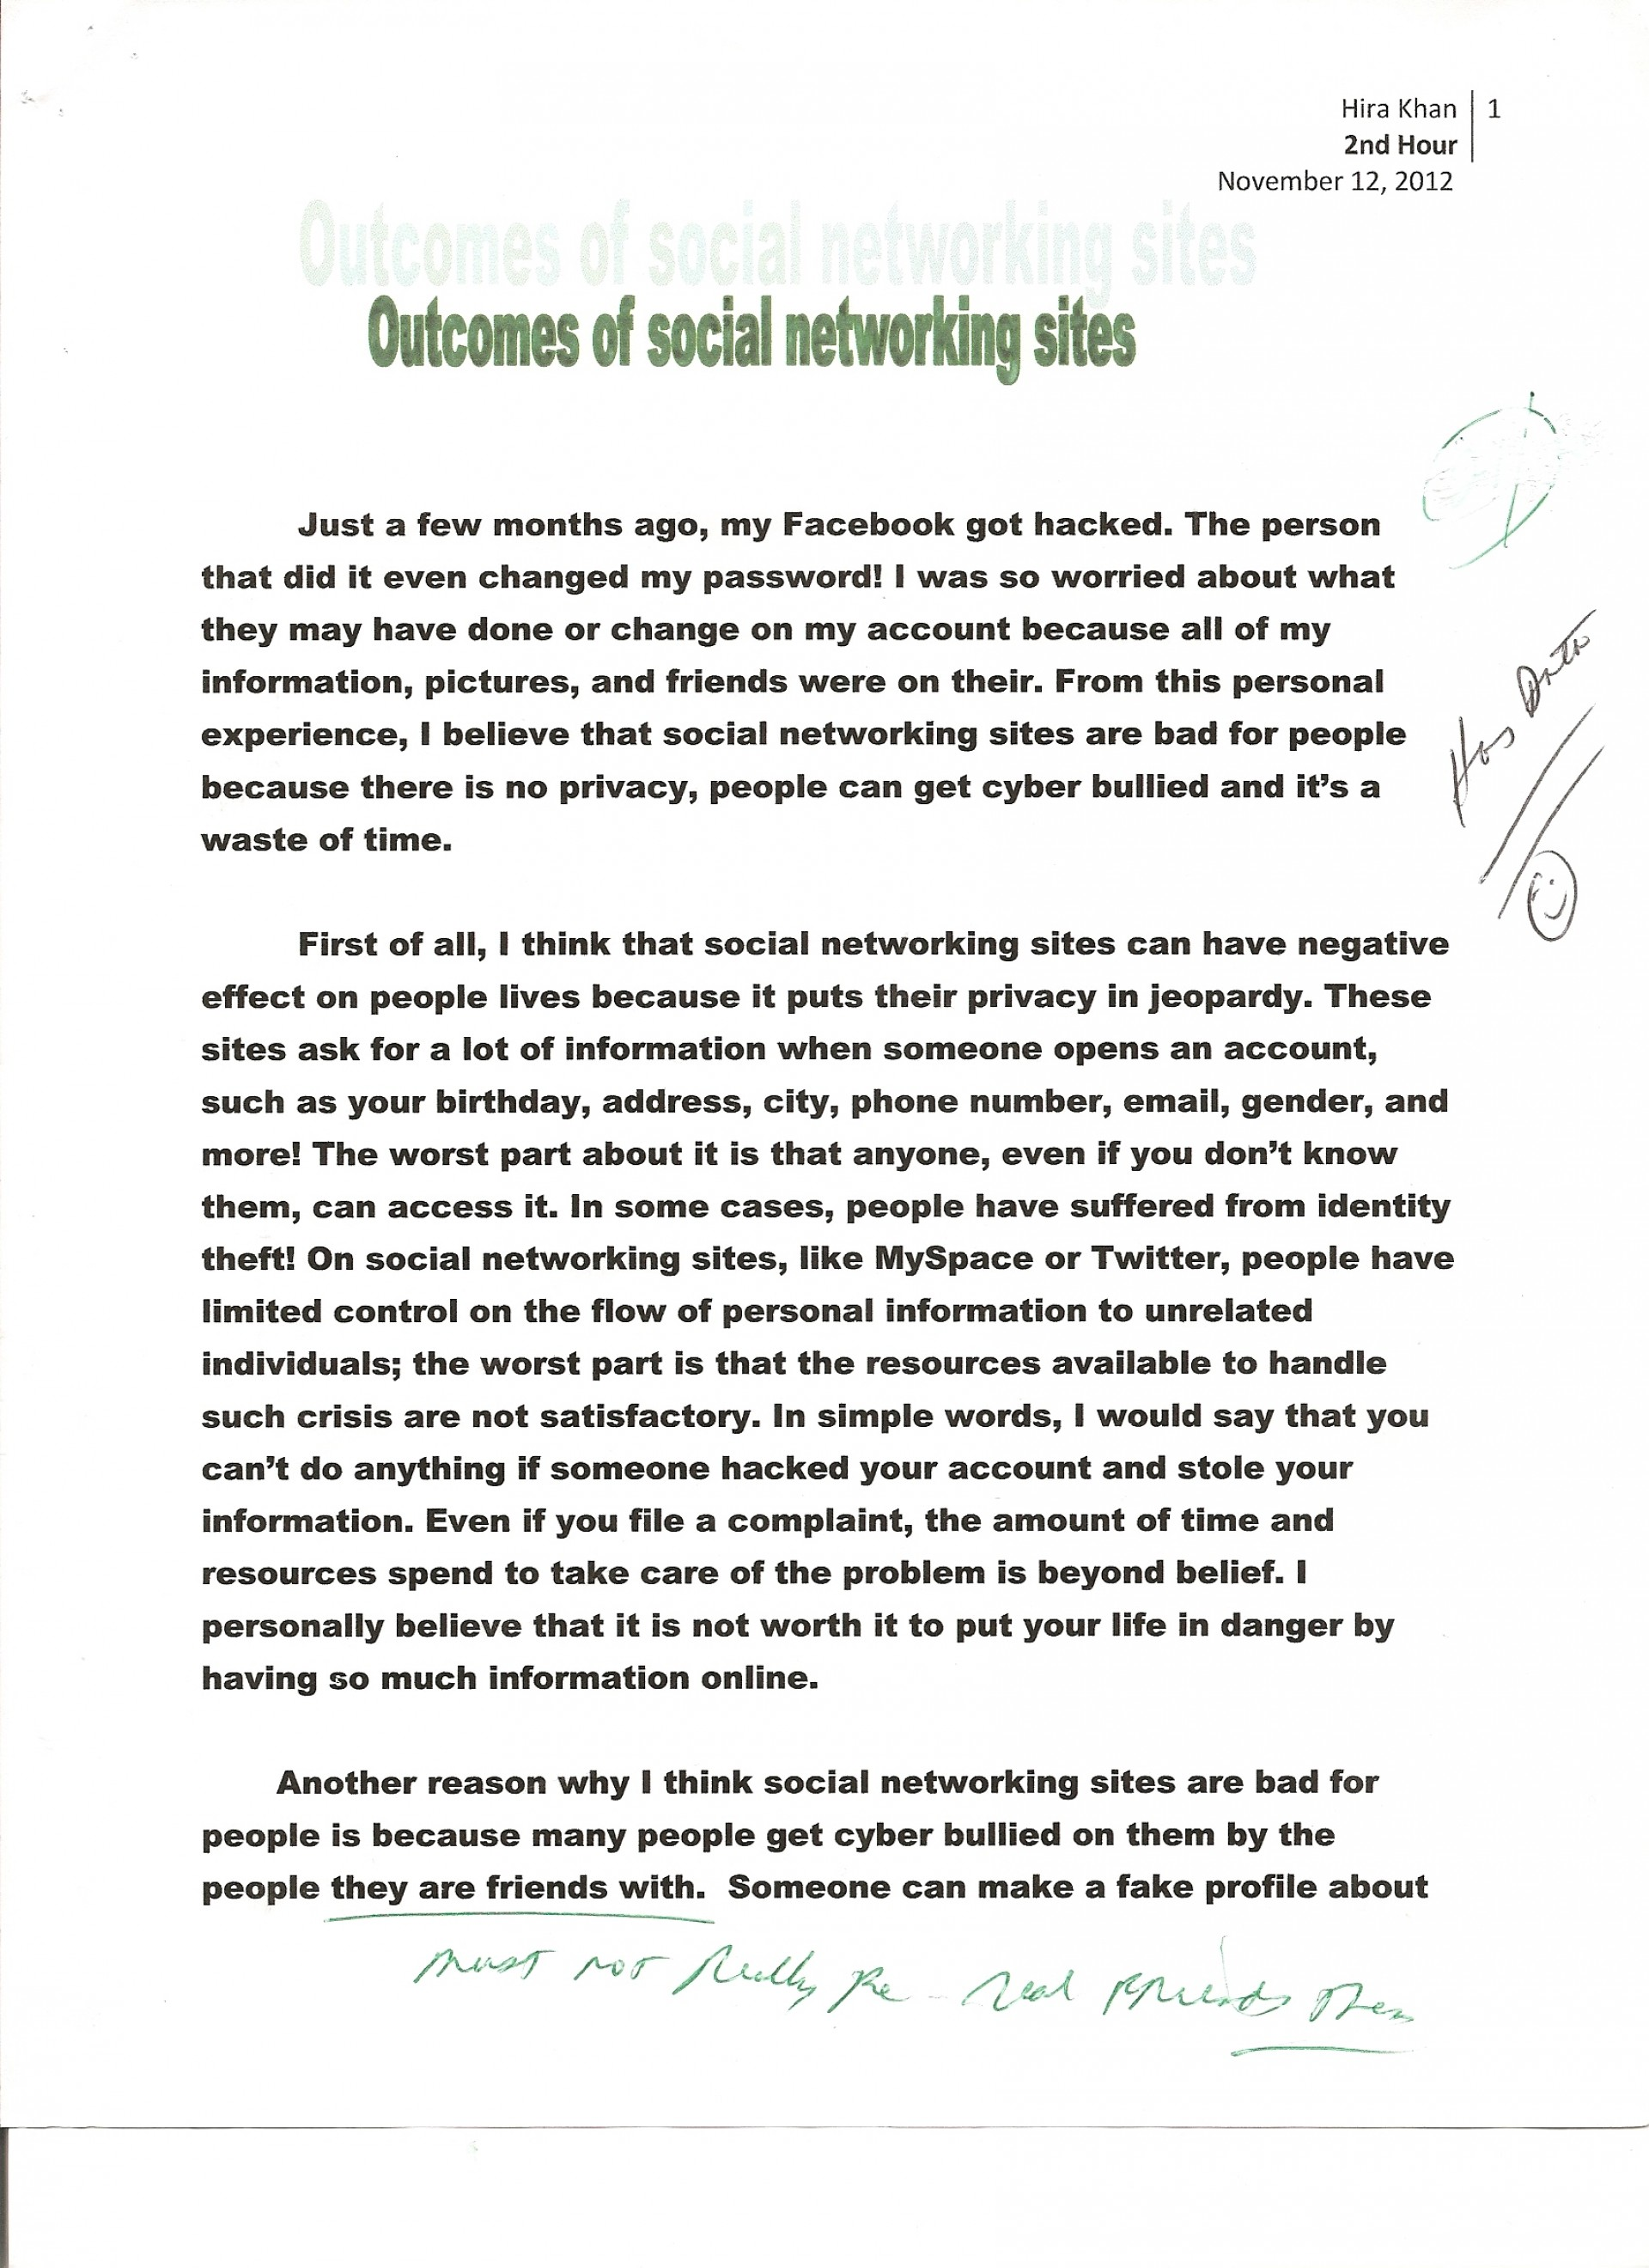 007 Essay Example Social Networking 1 Opinion About Fast Unbelievable Food Restaurants 1920